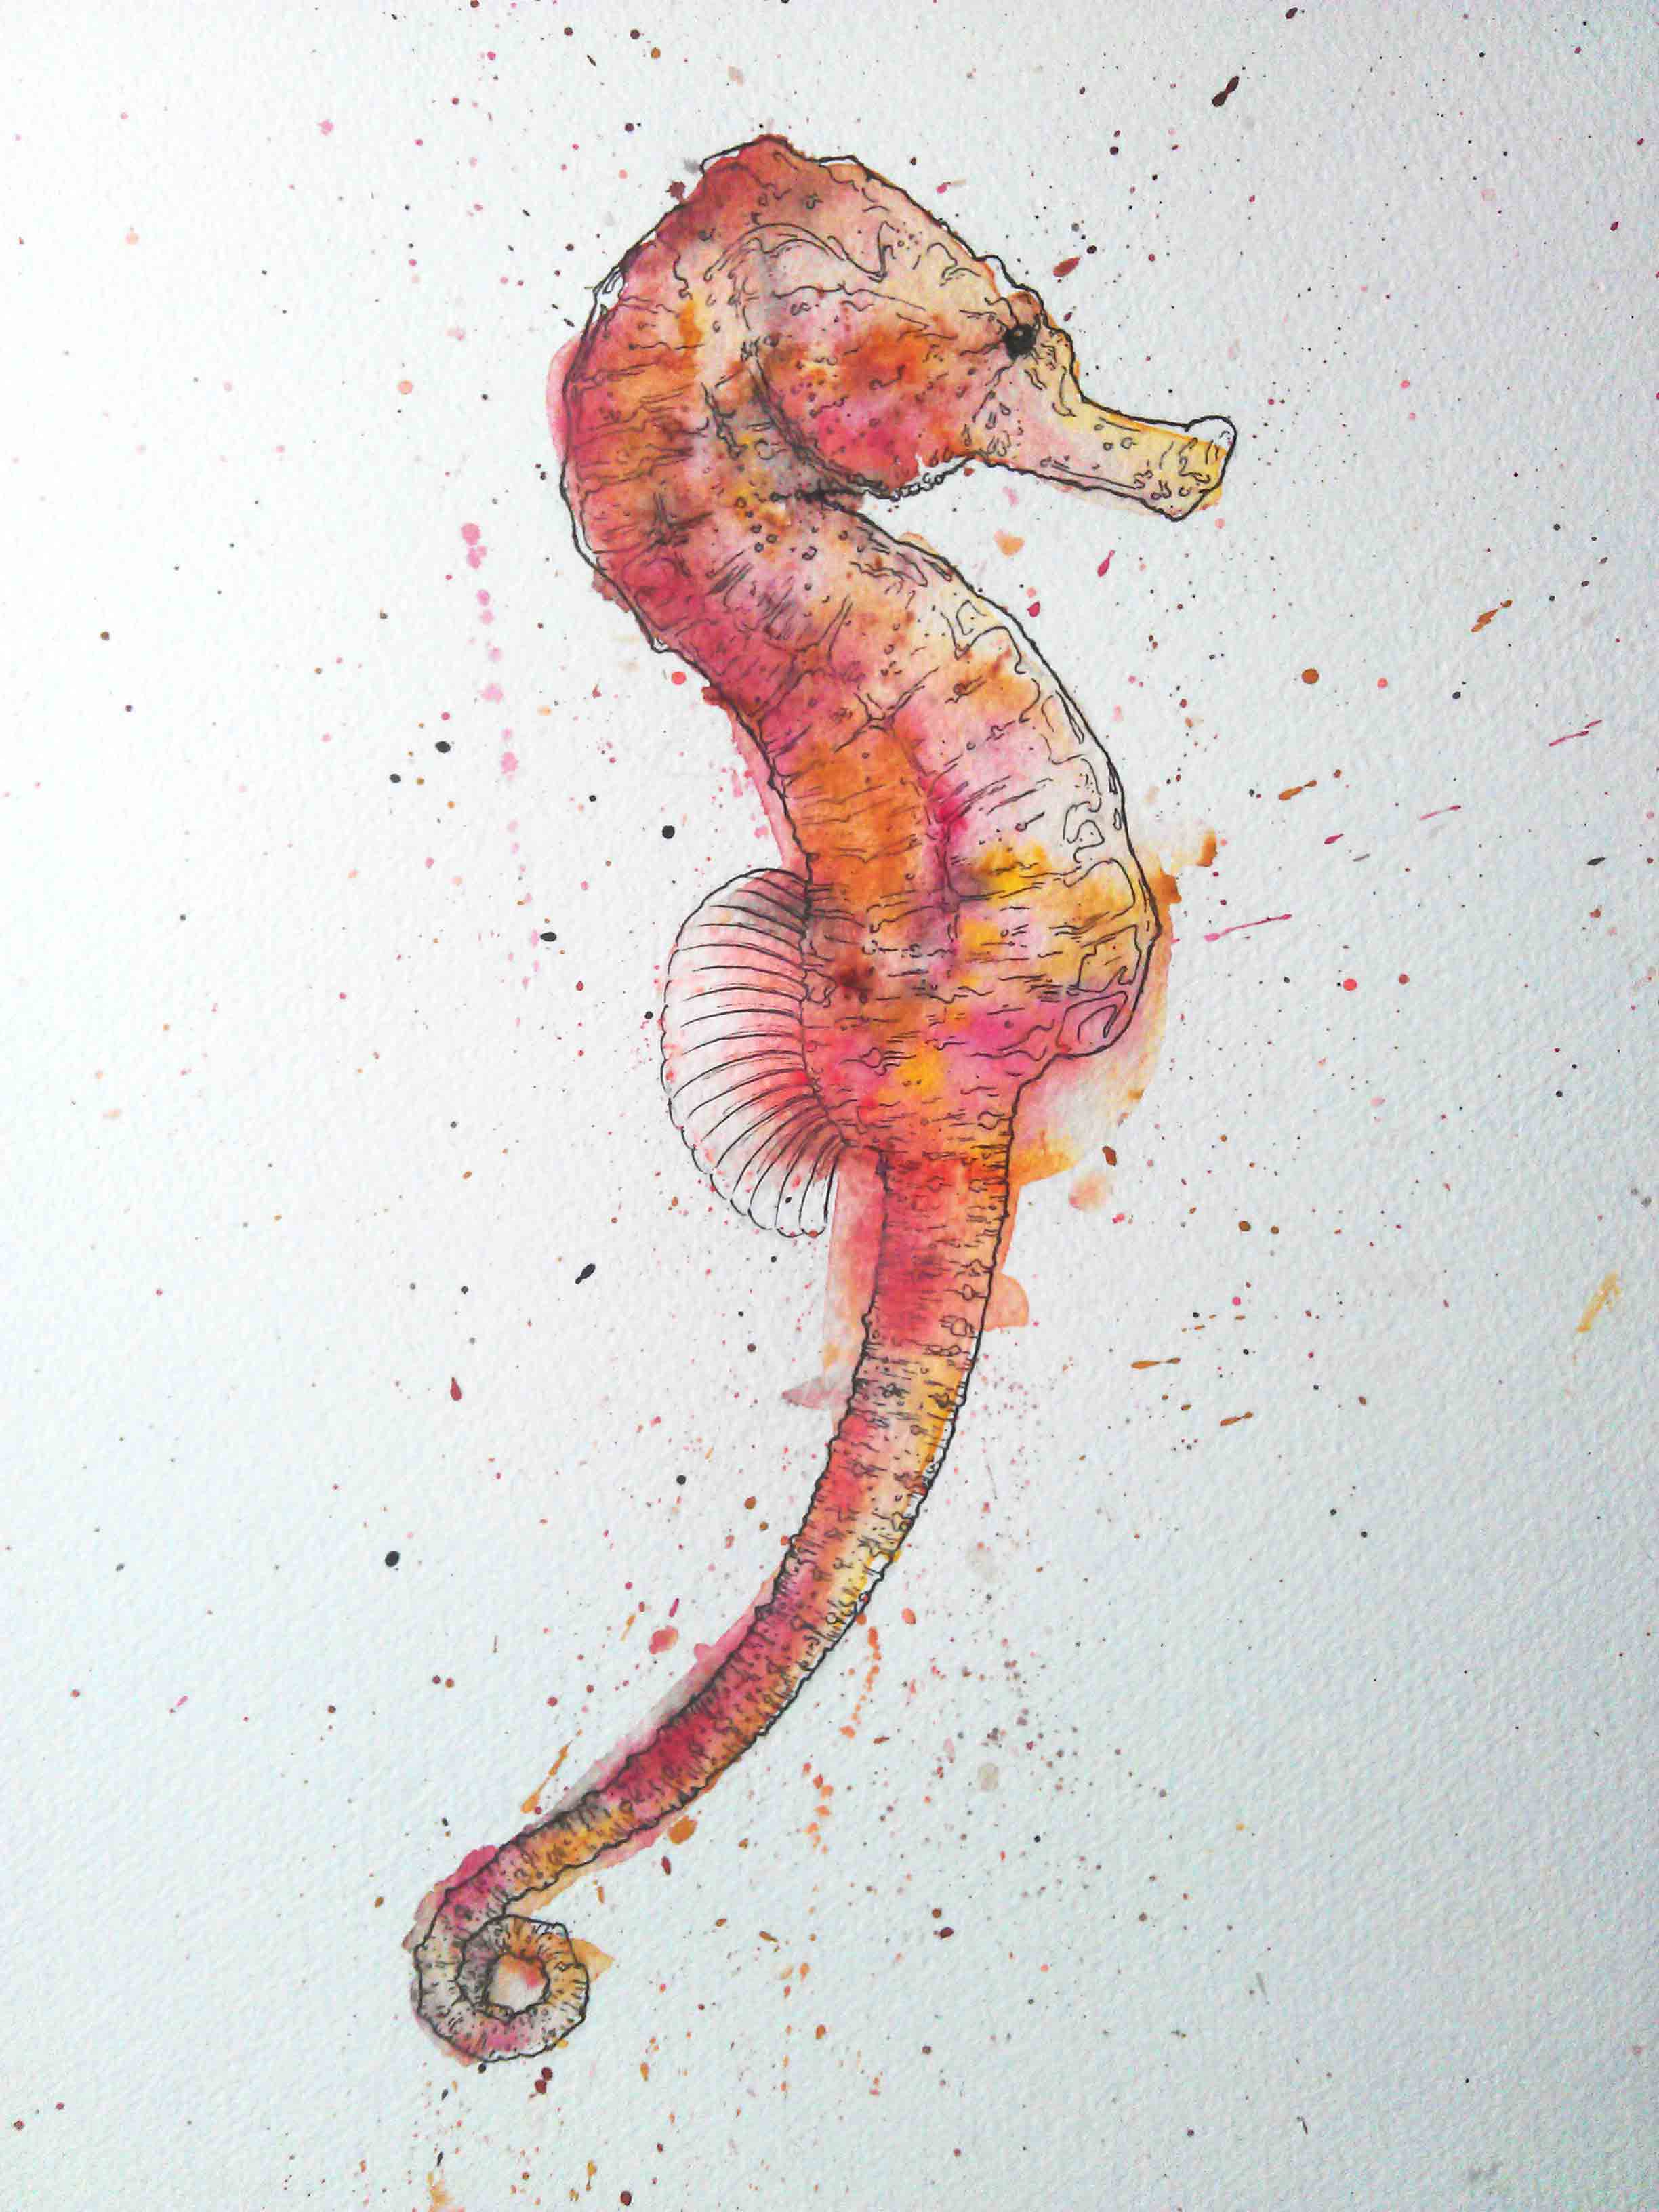 Watercolour Seahorse illustration by Geoff Muskett